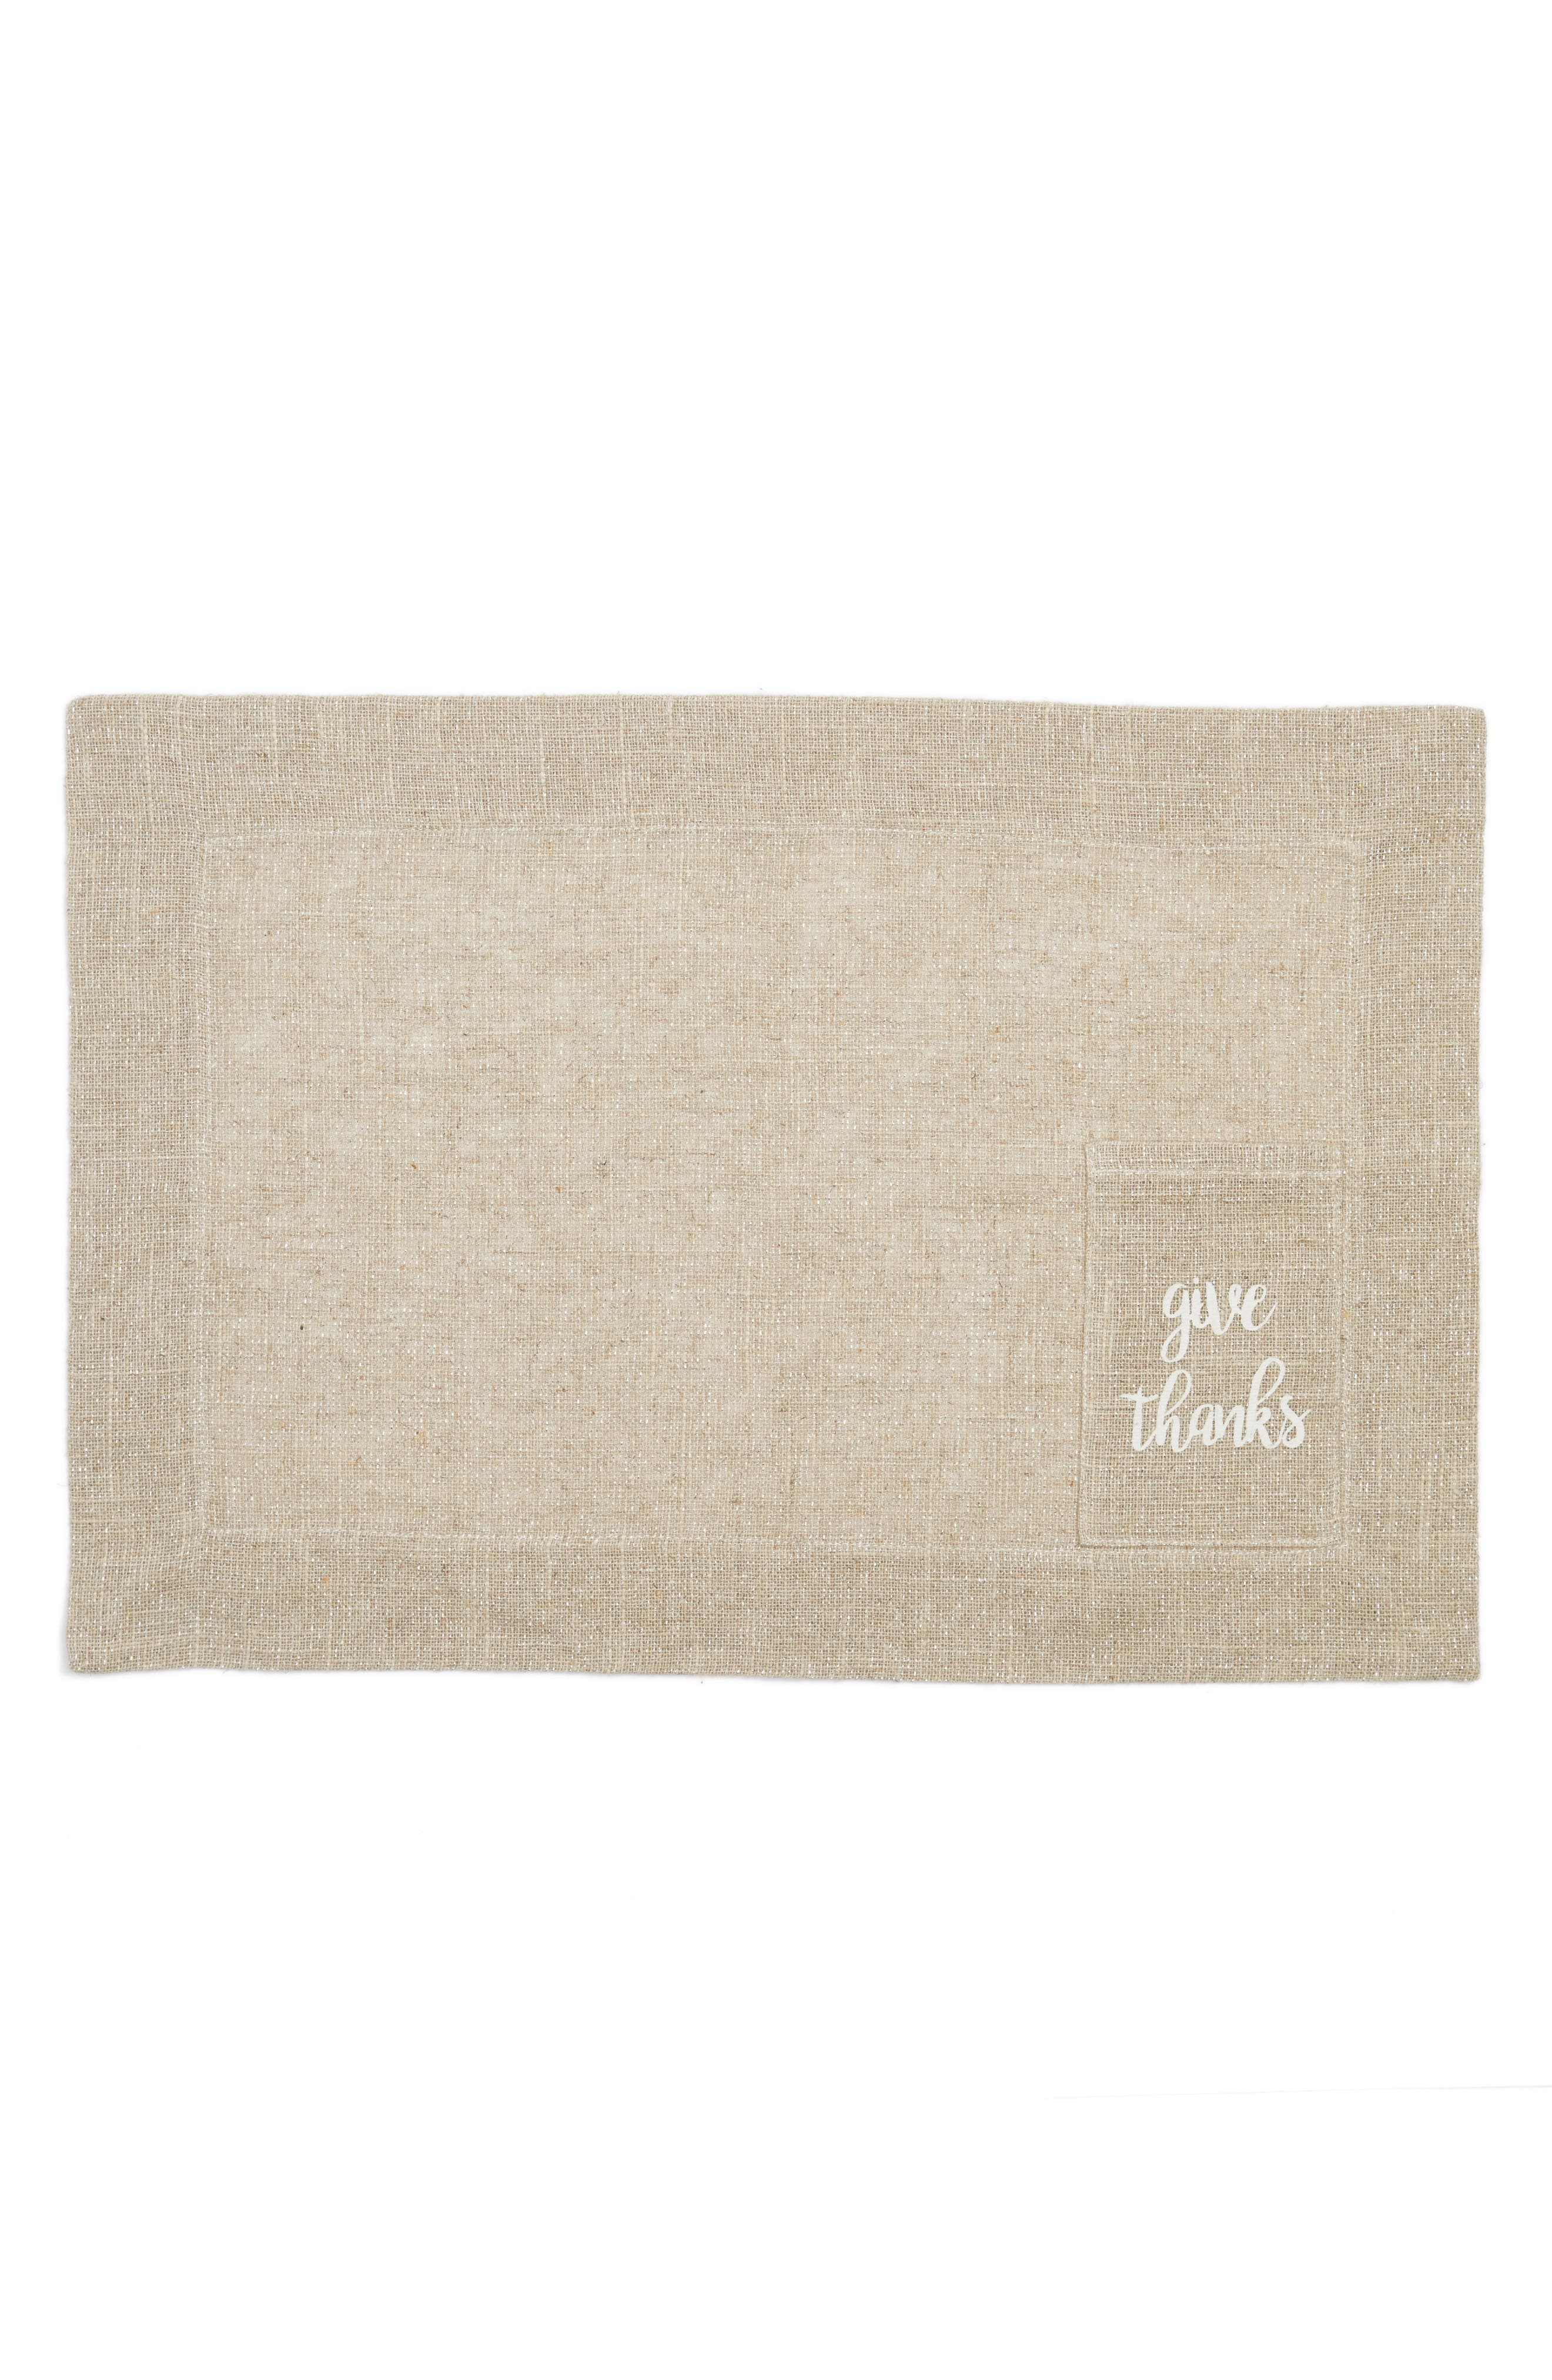 Alternate Image 1 Selected - Levtex Give Thanks Placemat